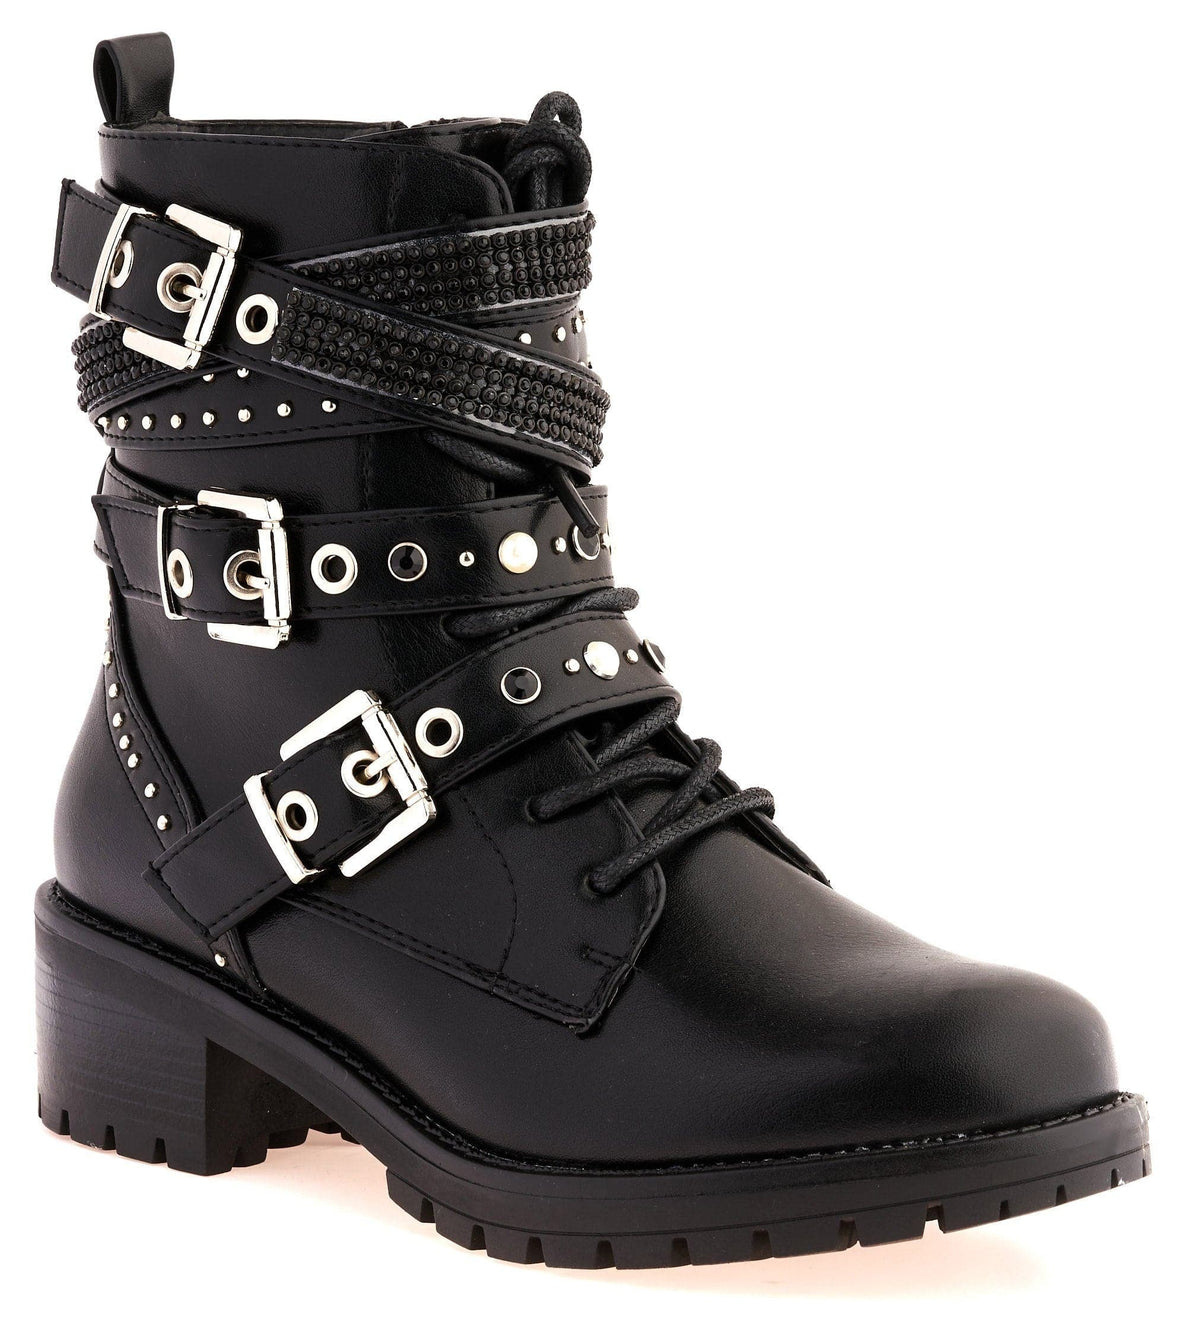 Hailey Diamante Crossover Laceup Biker Boot in Black Matt Boots Miss Diva